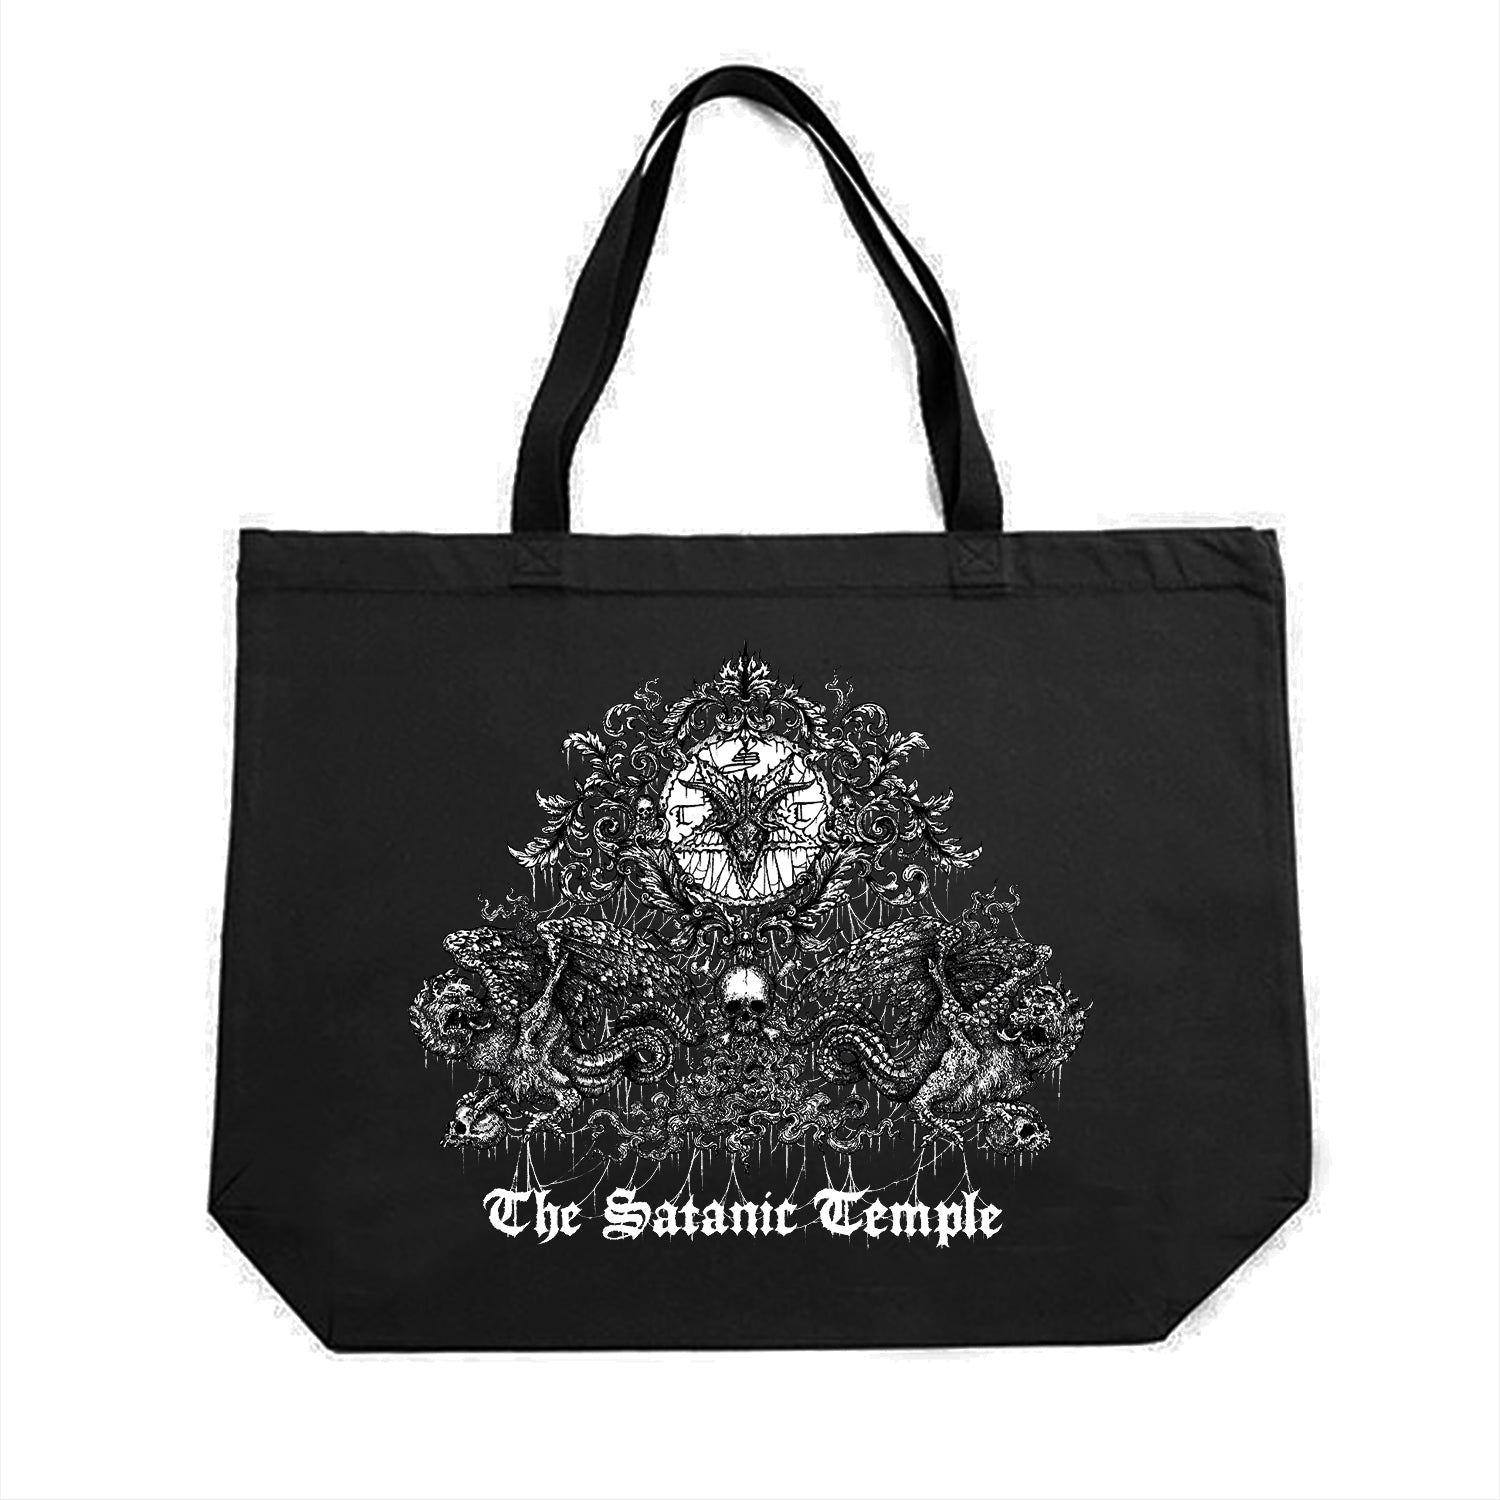 5c3dc5c7b4 The Satanic Temple Crest Large Tote Bag Designed by Luciana ...